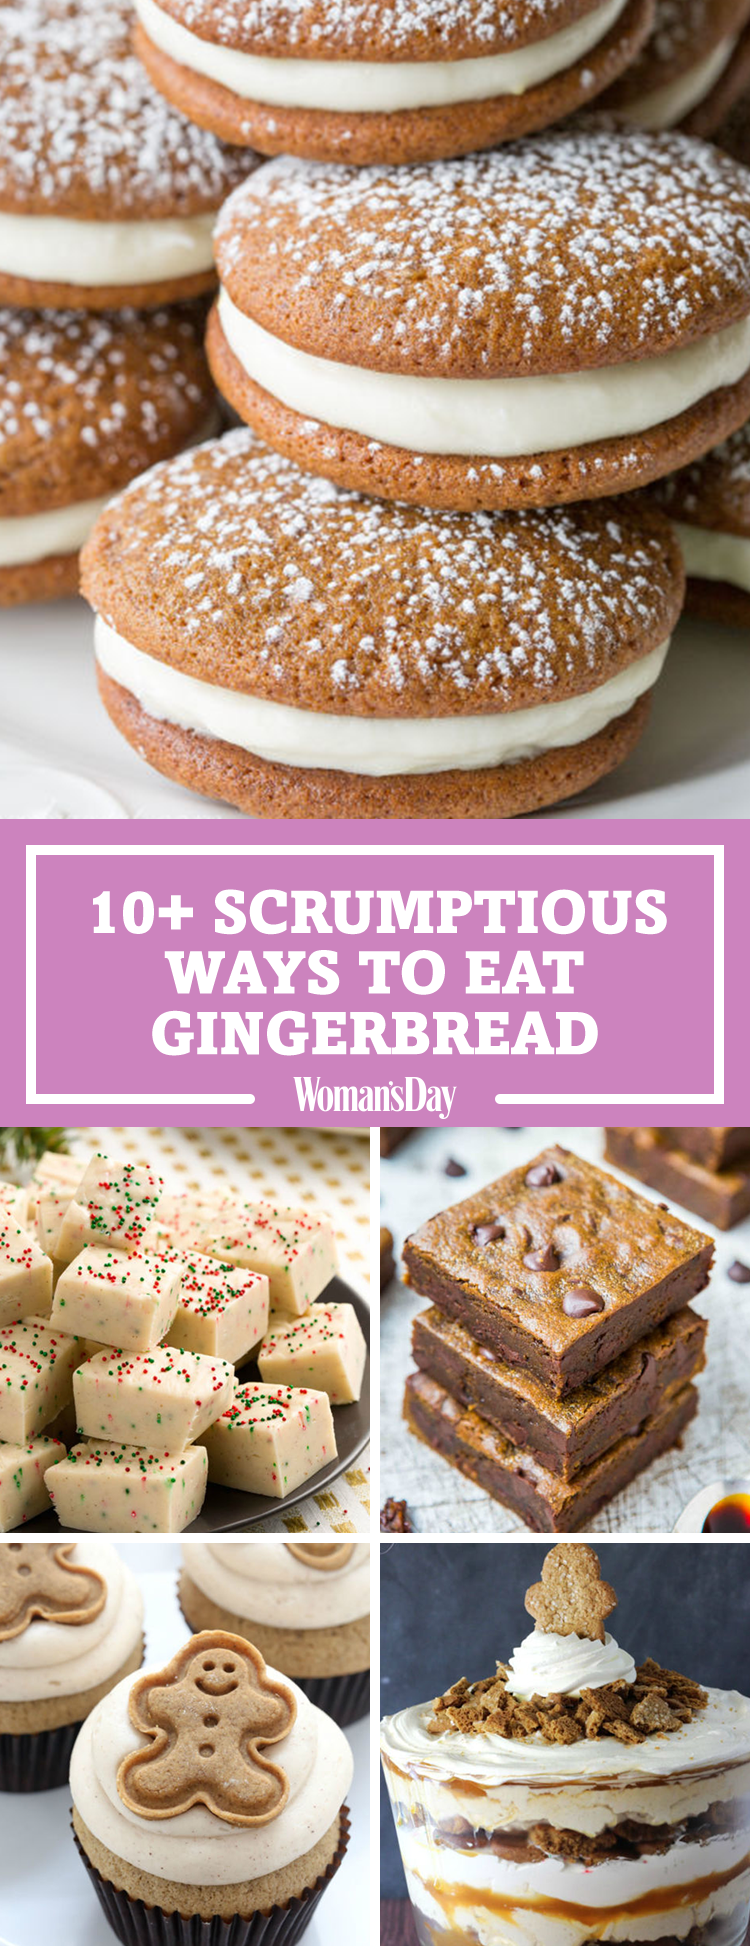 13 best gingerbread dessert recipes easy homemade gingerbread ideas